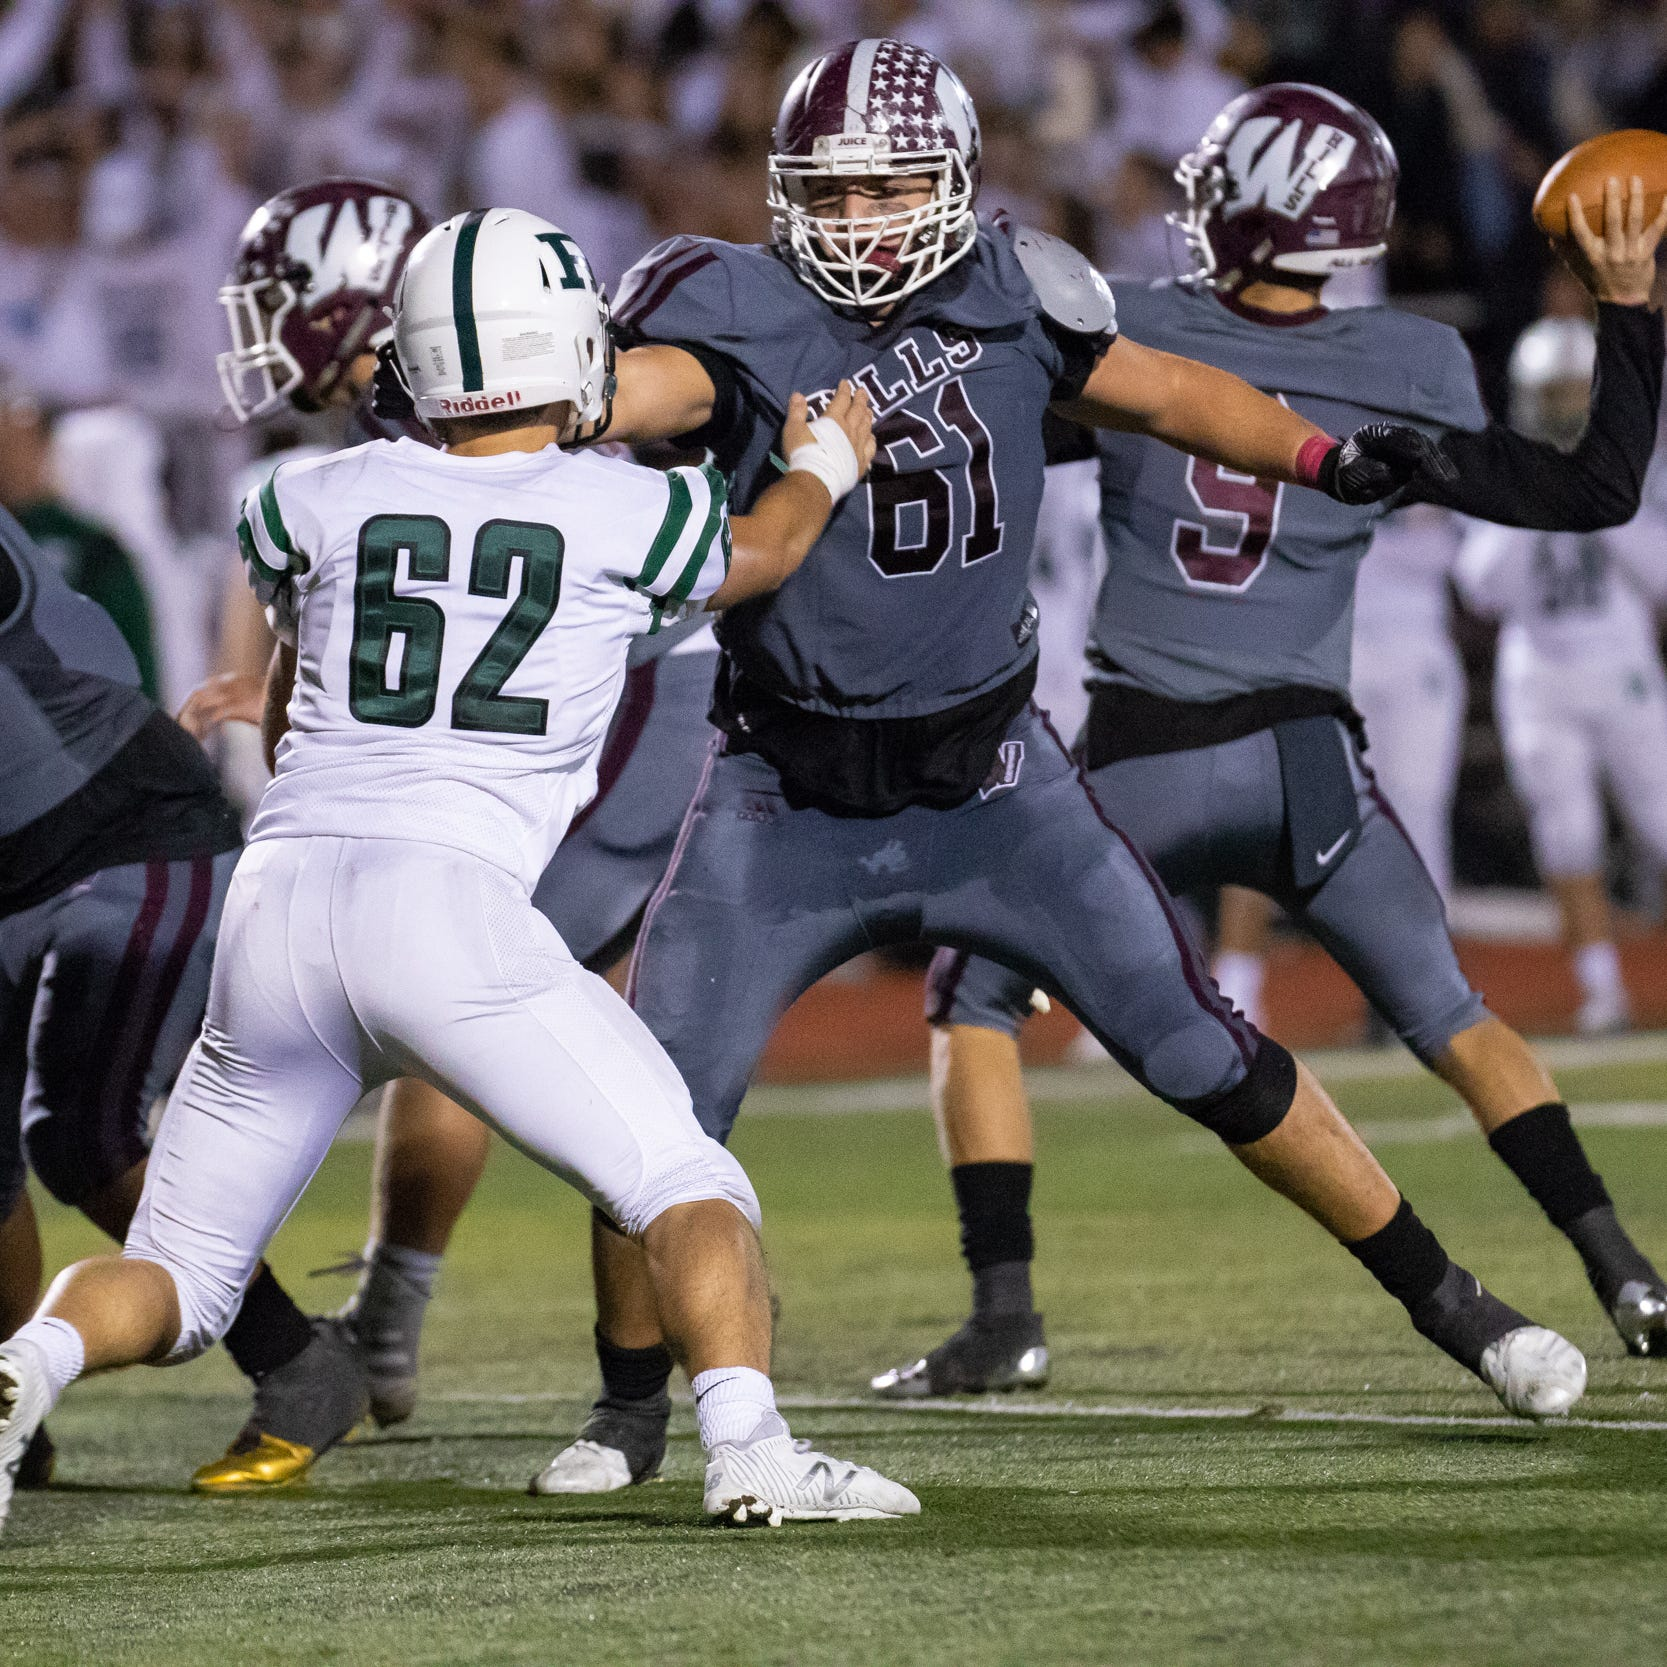 NJ football recruiting tracker: How the top recruits fared in Week 6